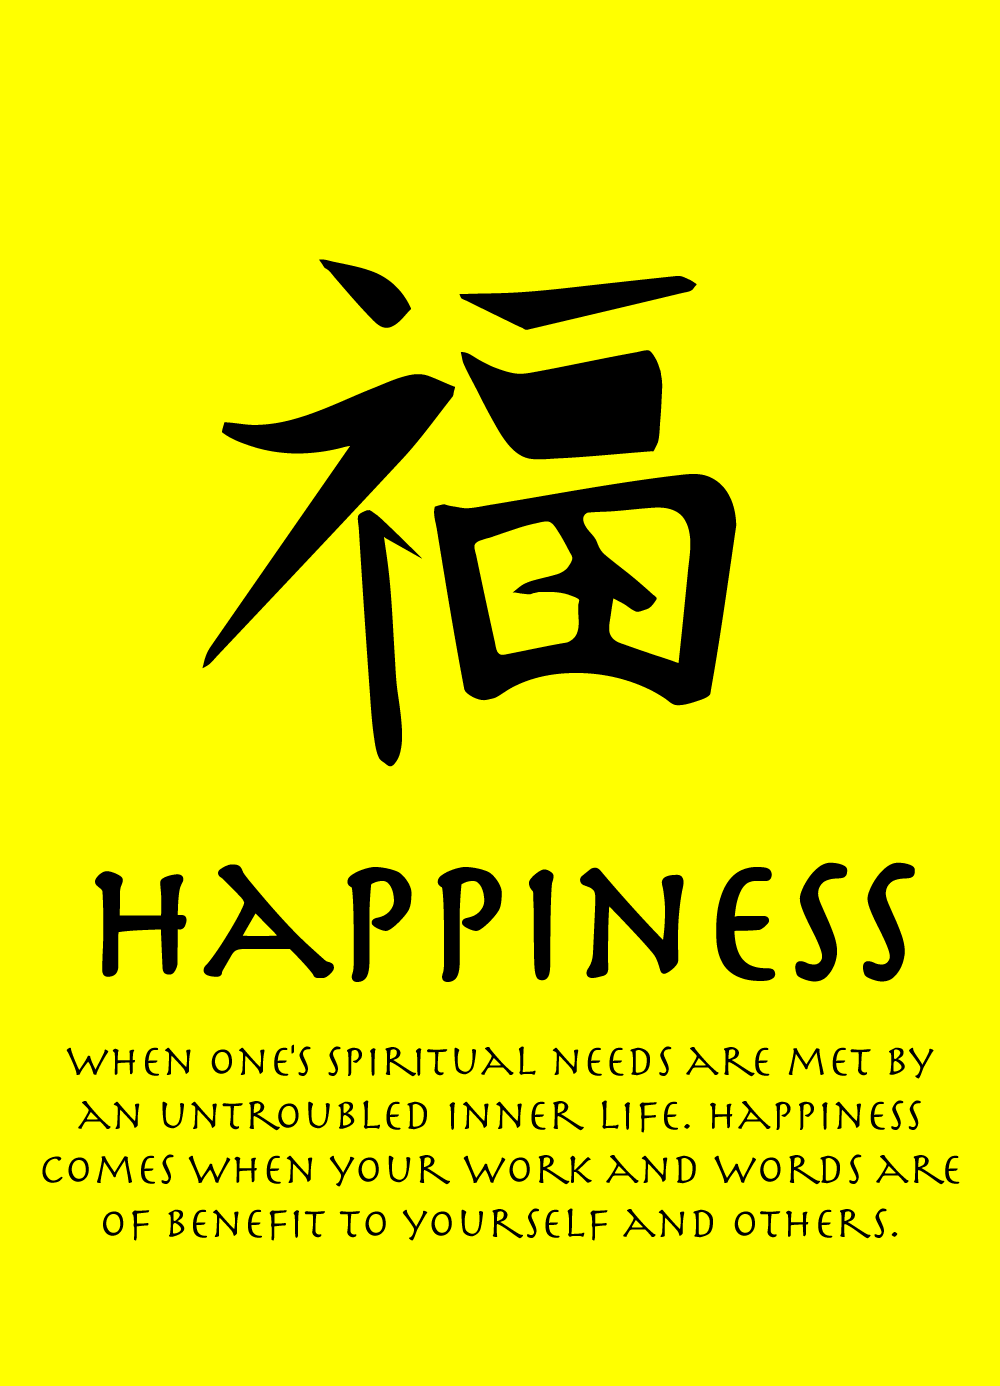 Happiness symbol and good fortune quote when ones spiritual happiness symbol and good fortune quote when ones spiritual needs are met by an untroubled inner life happiness comes when your work and words are of biocorpaavc